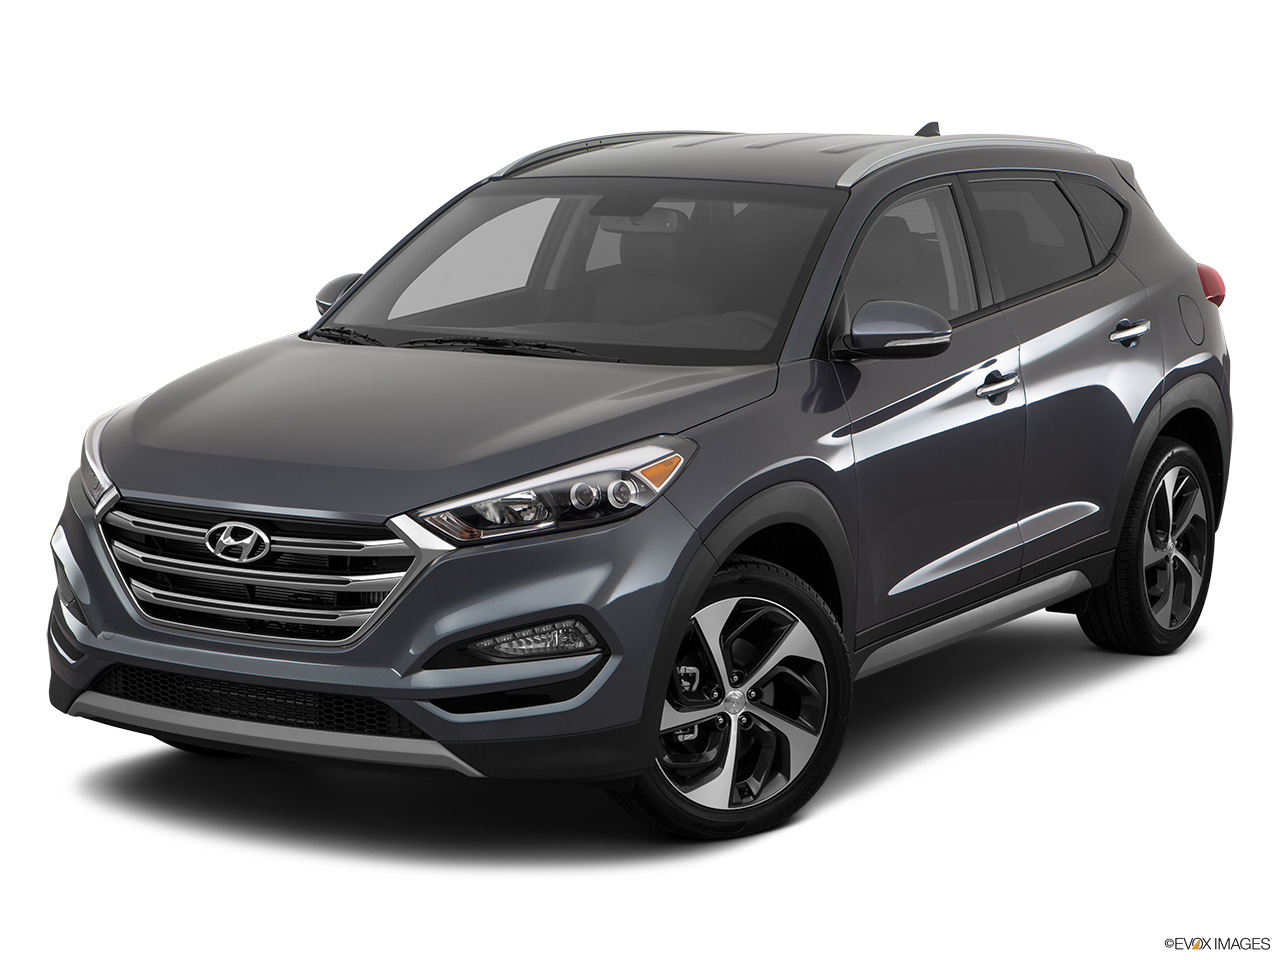 2017 hyundai tucson prices in uae gulf specs reviews for dubai abu dhabi and sharjah. Black Bedroom Furniture Sets. Home Design Ideas